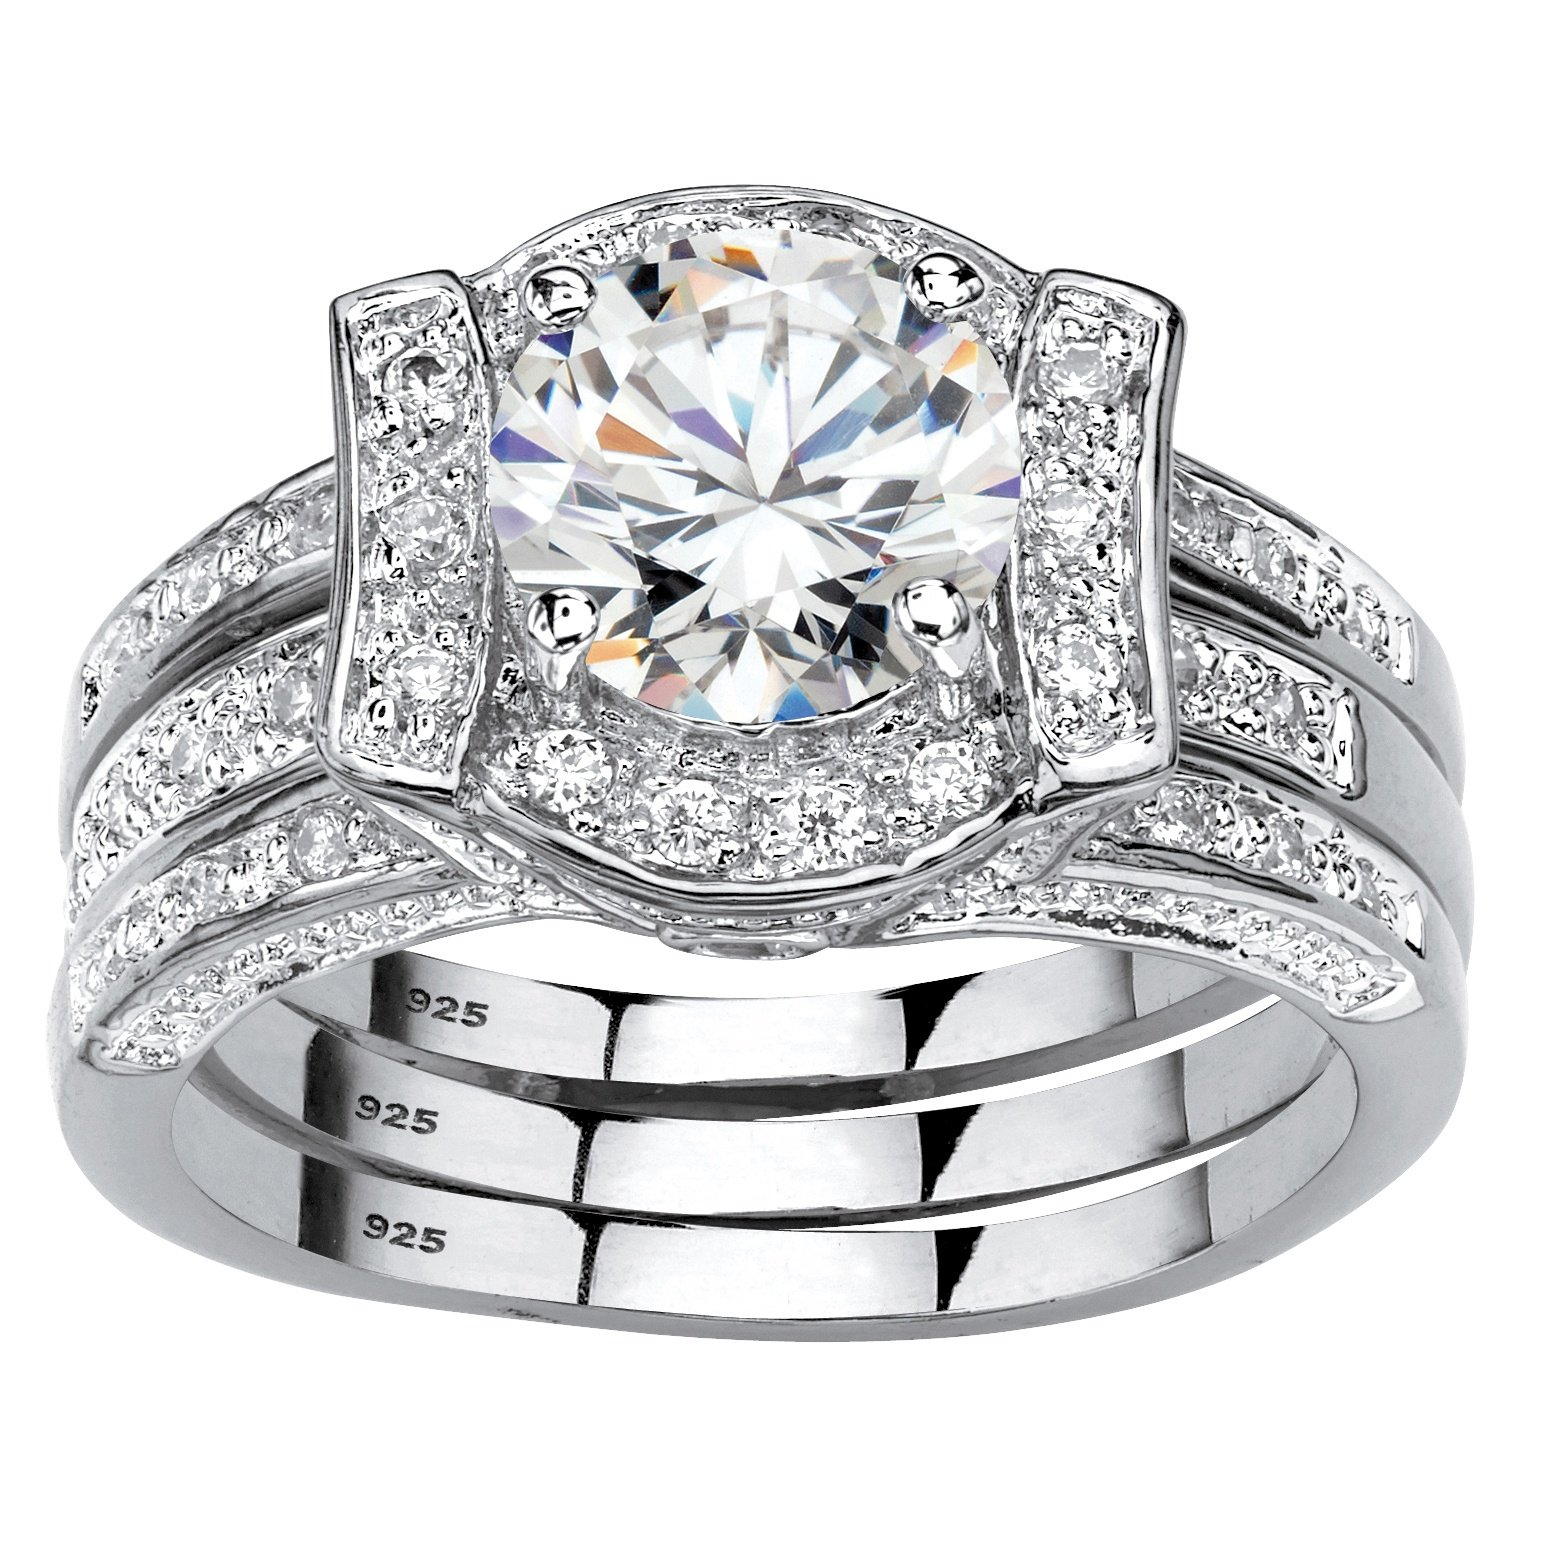 Platinum over Sterling Silver Round Cubic Zirconia Jacket Bridal Ring Set Size 6